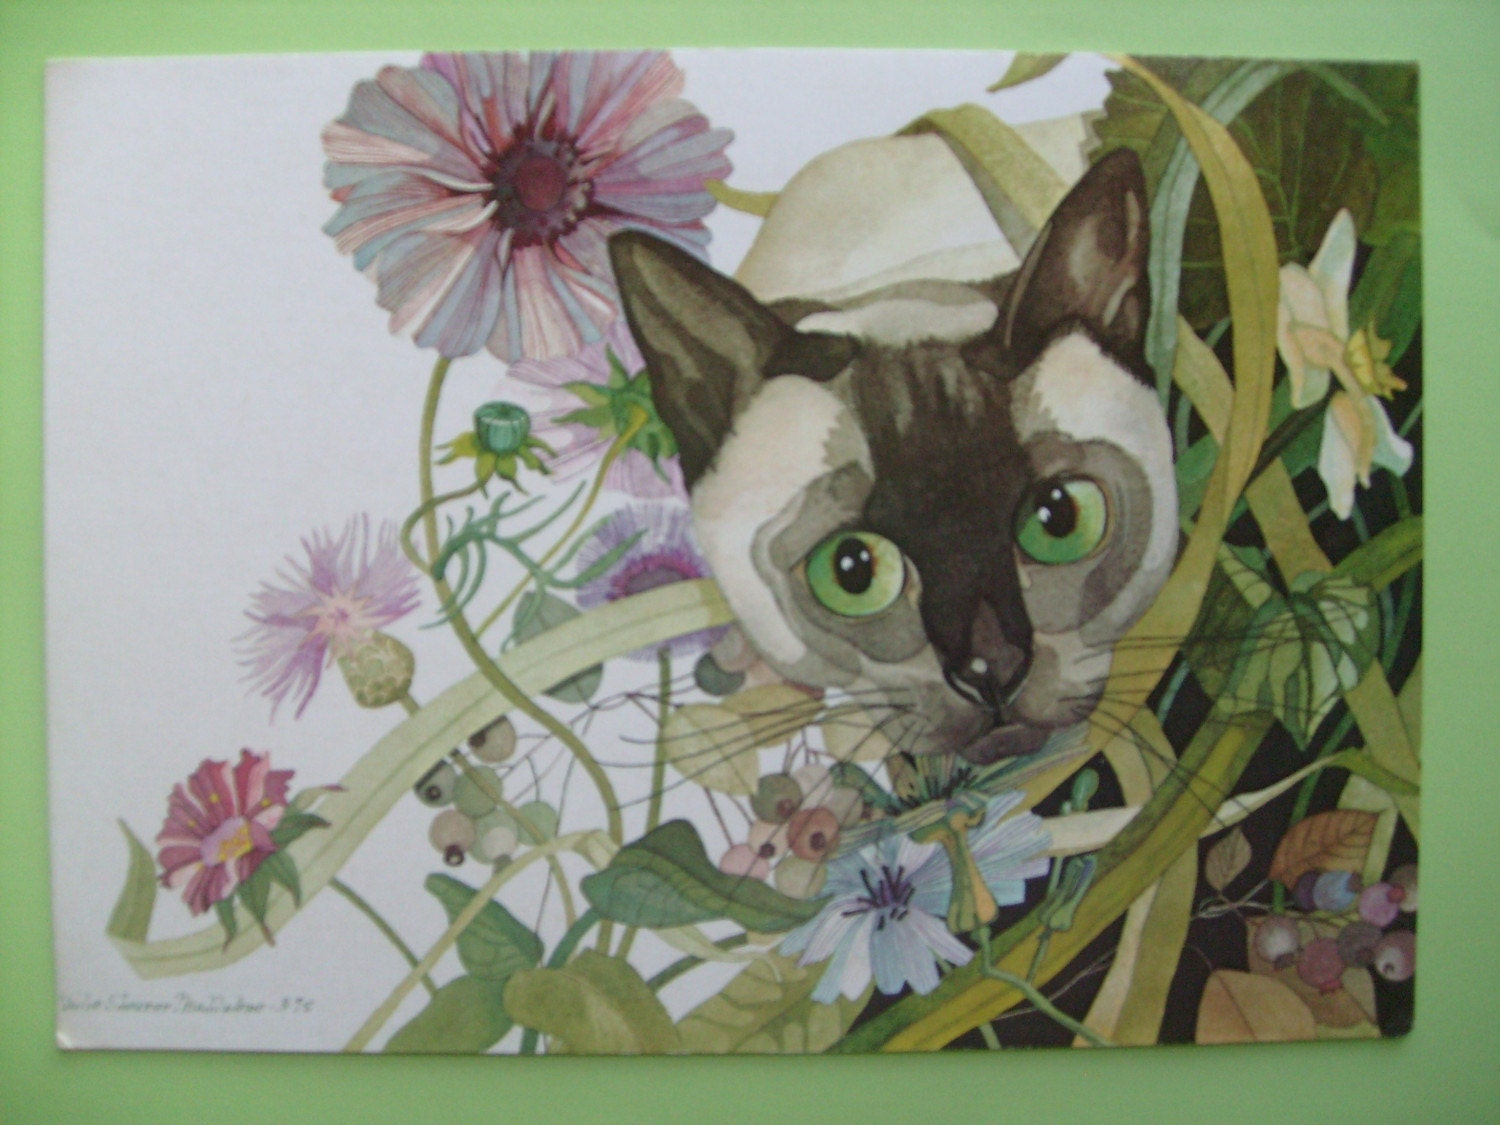 PIF FEATURED IN A TREASURY TODAY VINTAGE SIAMESE CAT GREETING CARD